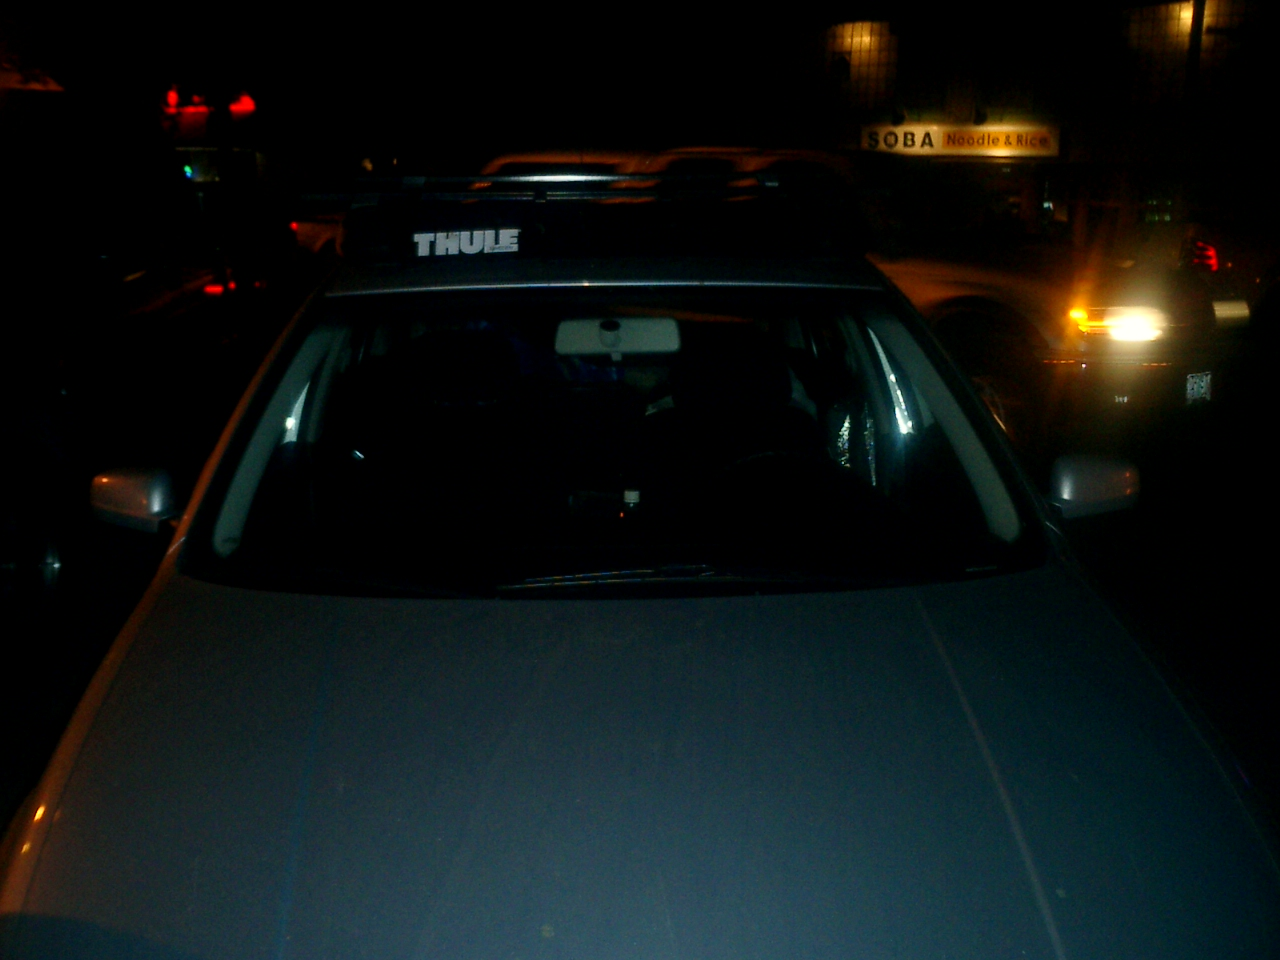 My car. The Native People had no idea know I was not one of them. Unless they looked at my license plate, of course.